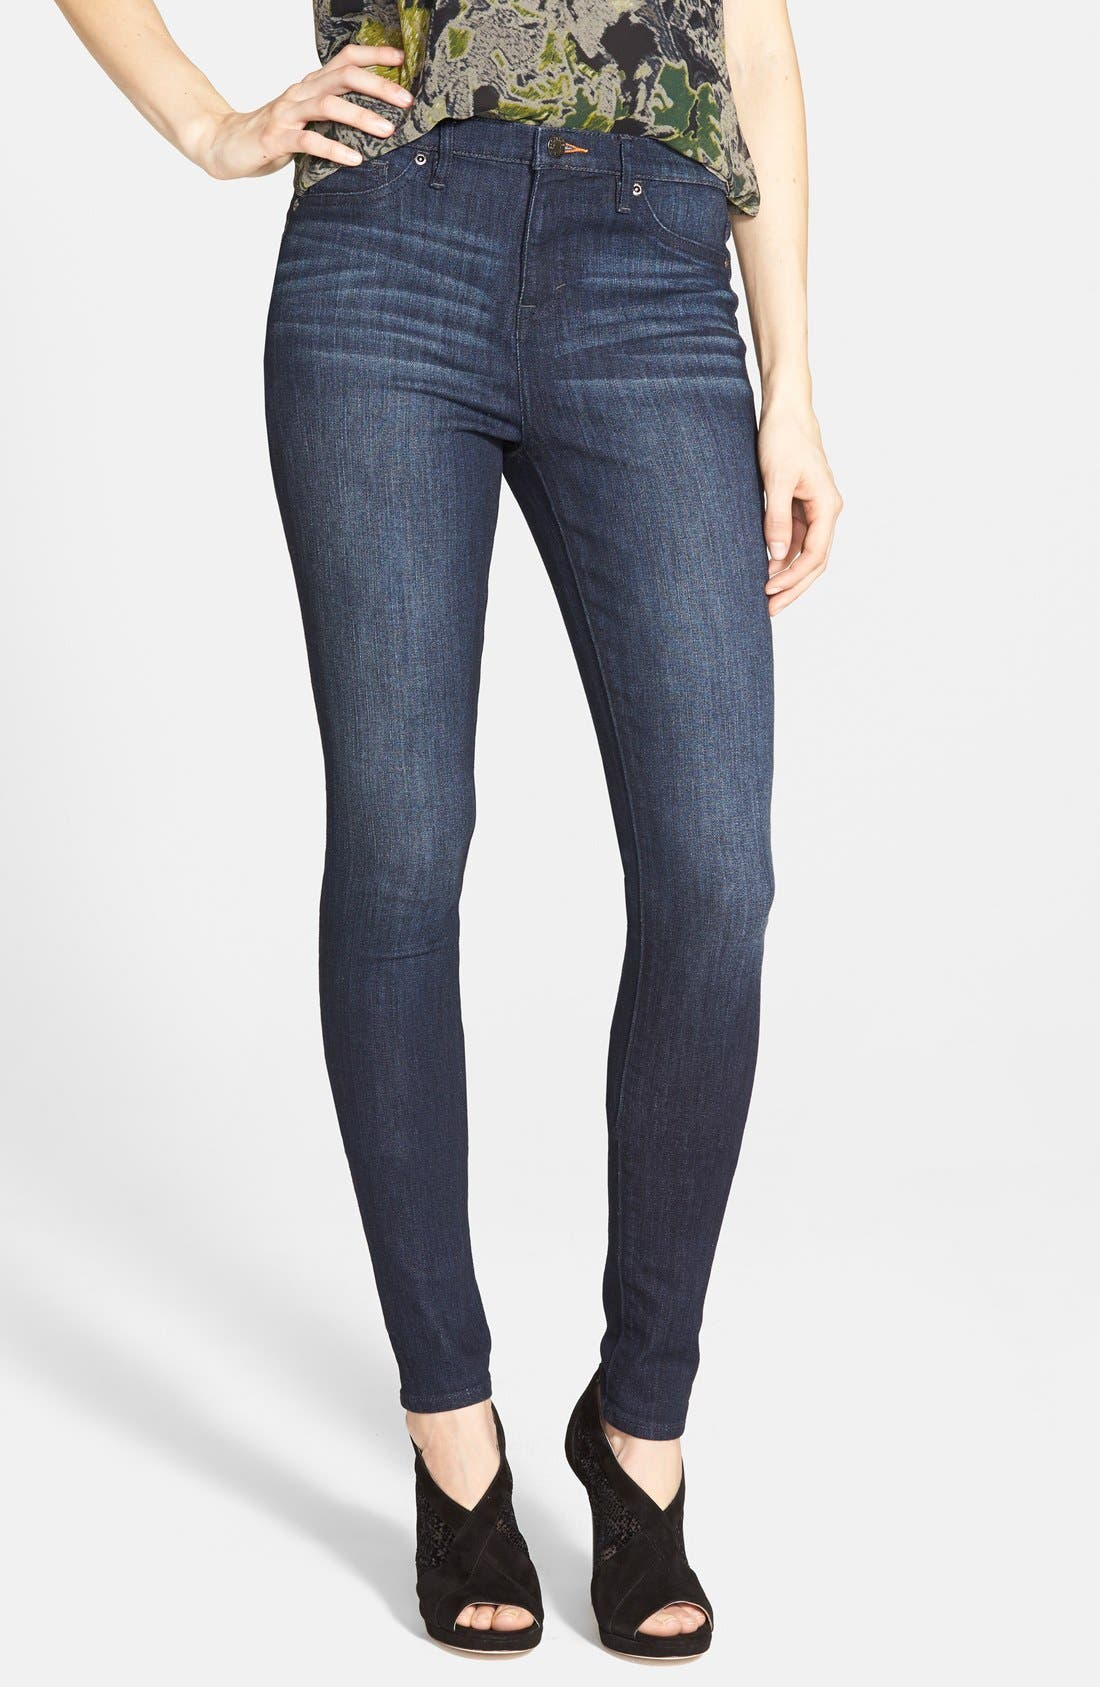 Alternate Image 1 Selected - Dittos Mid Rise Super Skinny Jeans (Blue)